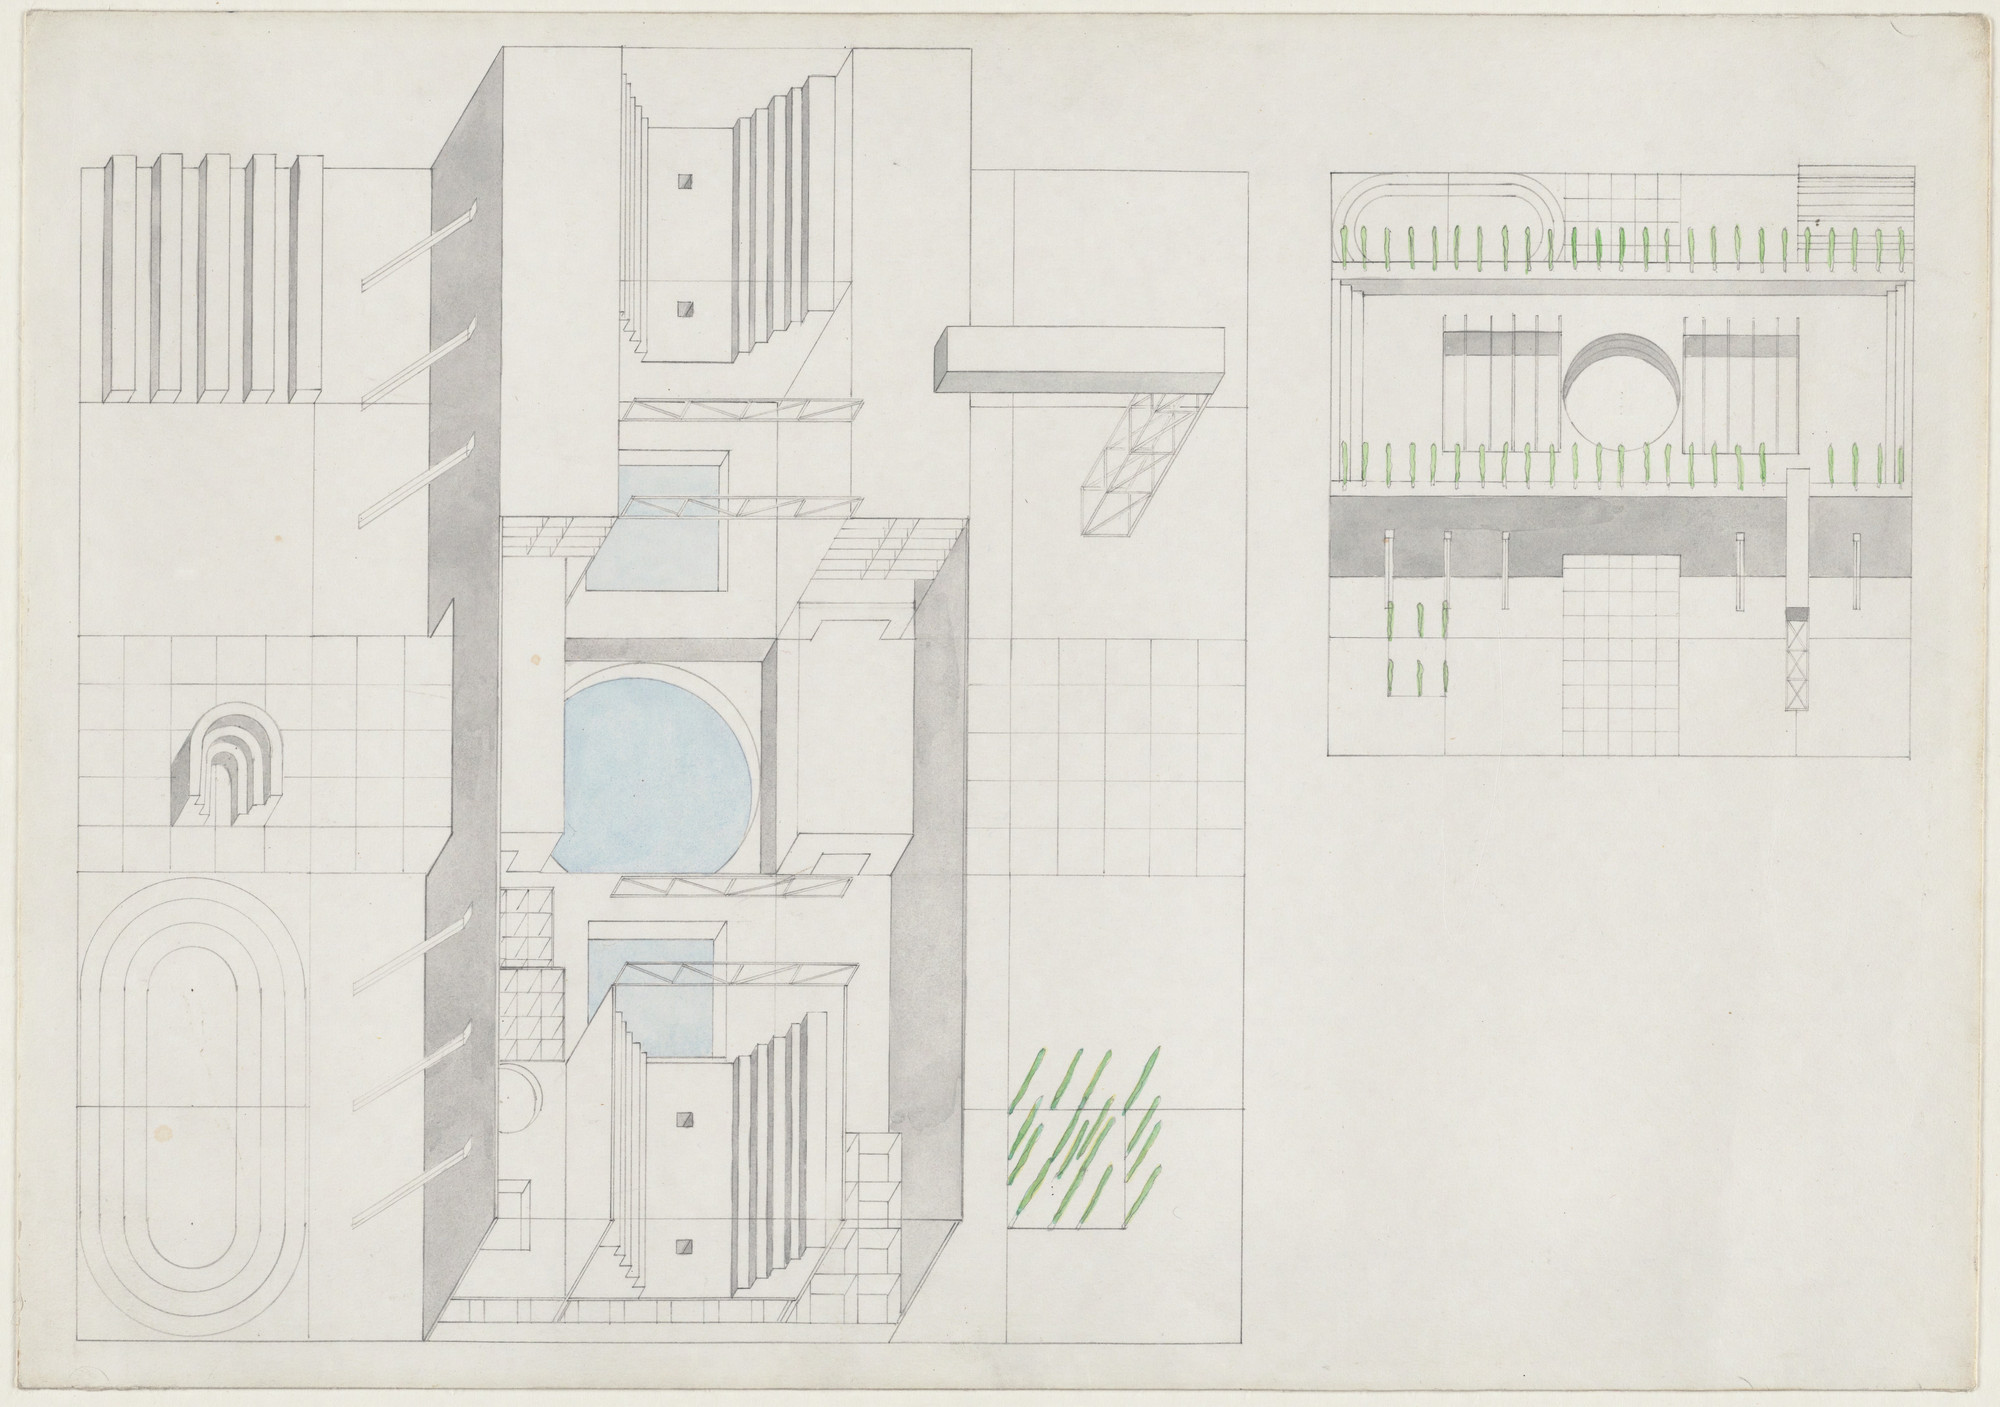 Rem Koolhaas, Elia Zenghelis, Madelon Vriesendorp, Zoe Zenghelis. Exodus, or the Voluntary Prisoners of Architecture: The Baths (Axonometric projection). 1972